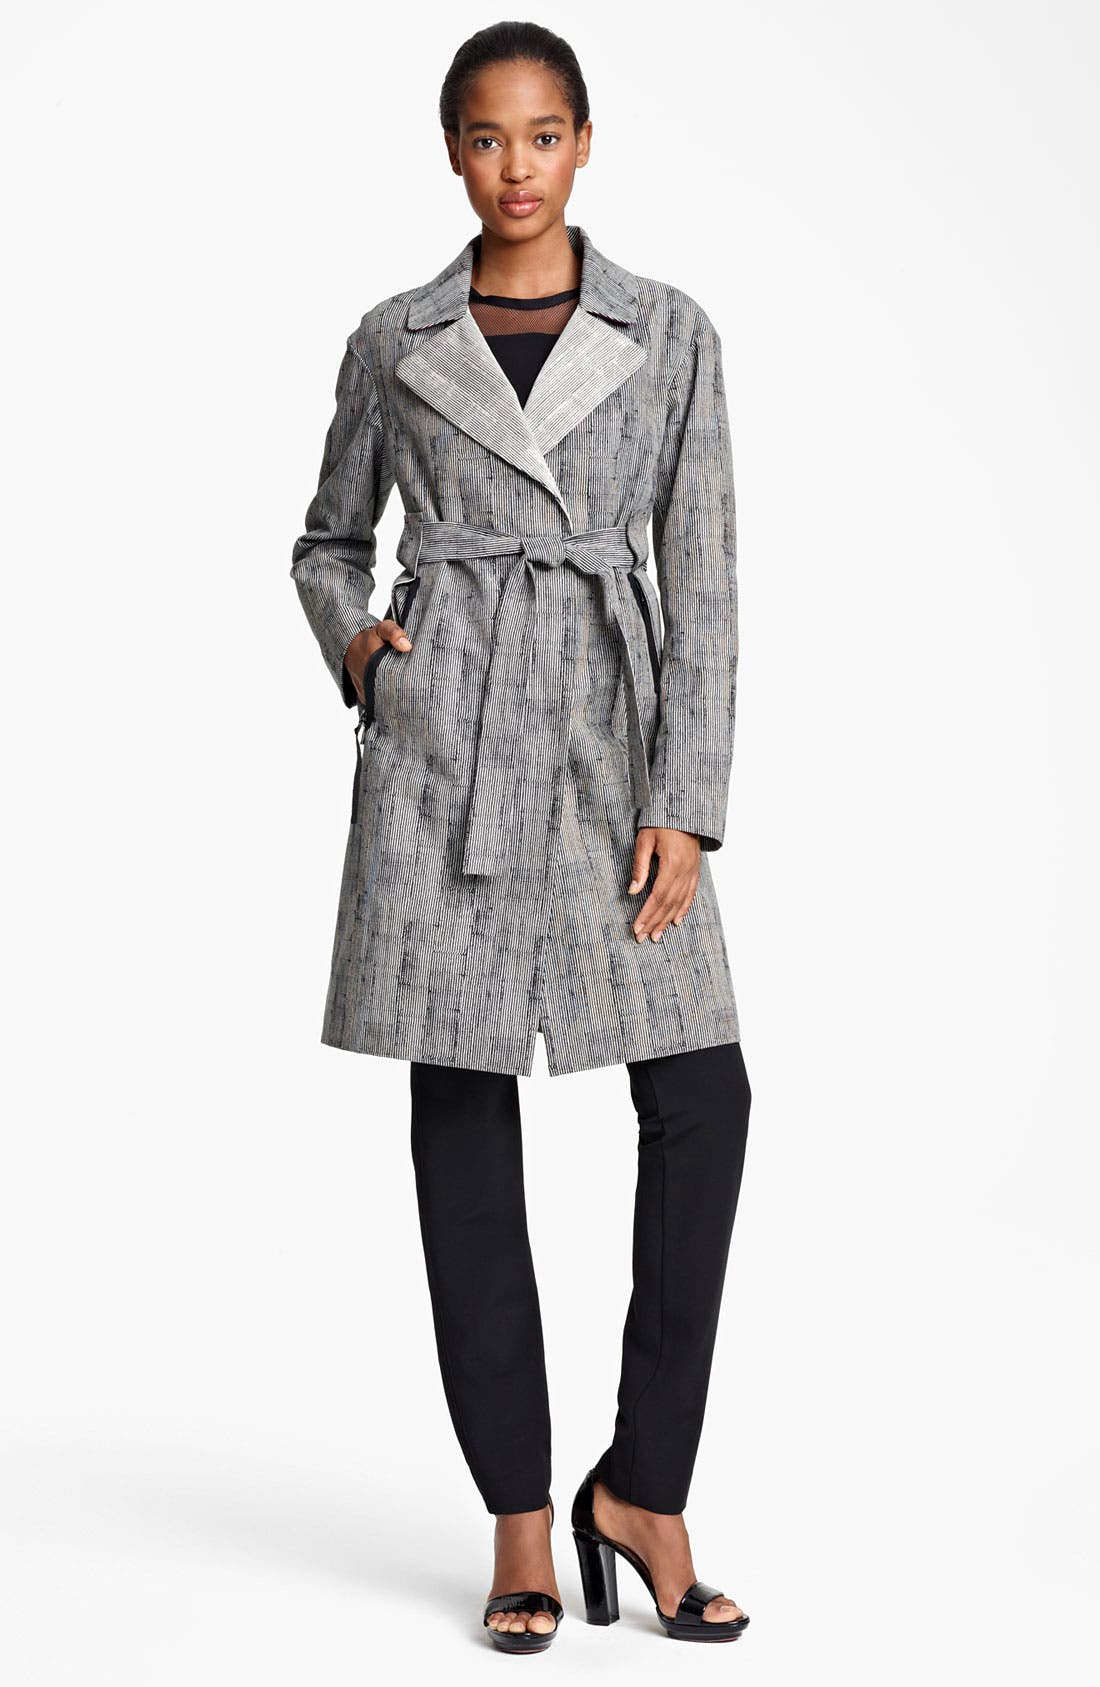 Alternate Image 1 Selected - Lida Baday Stripe Jacquard Trench Coat